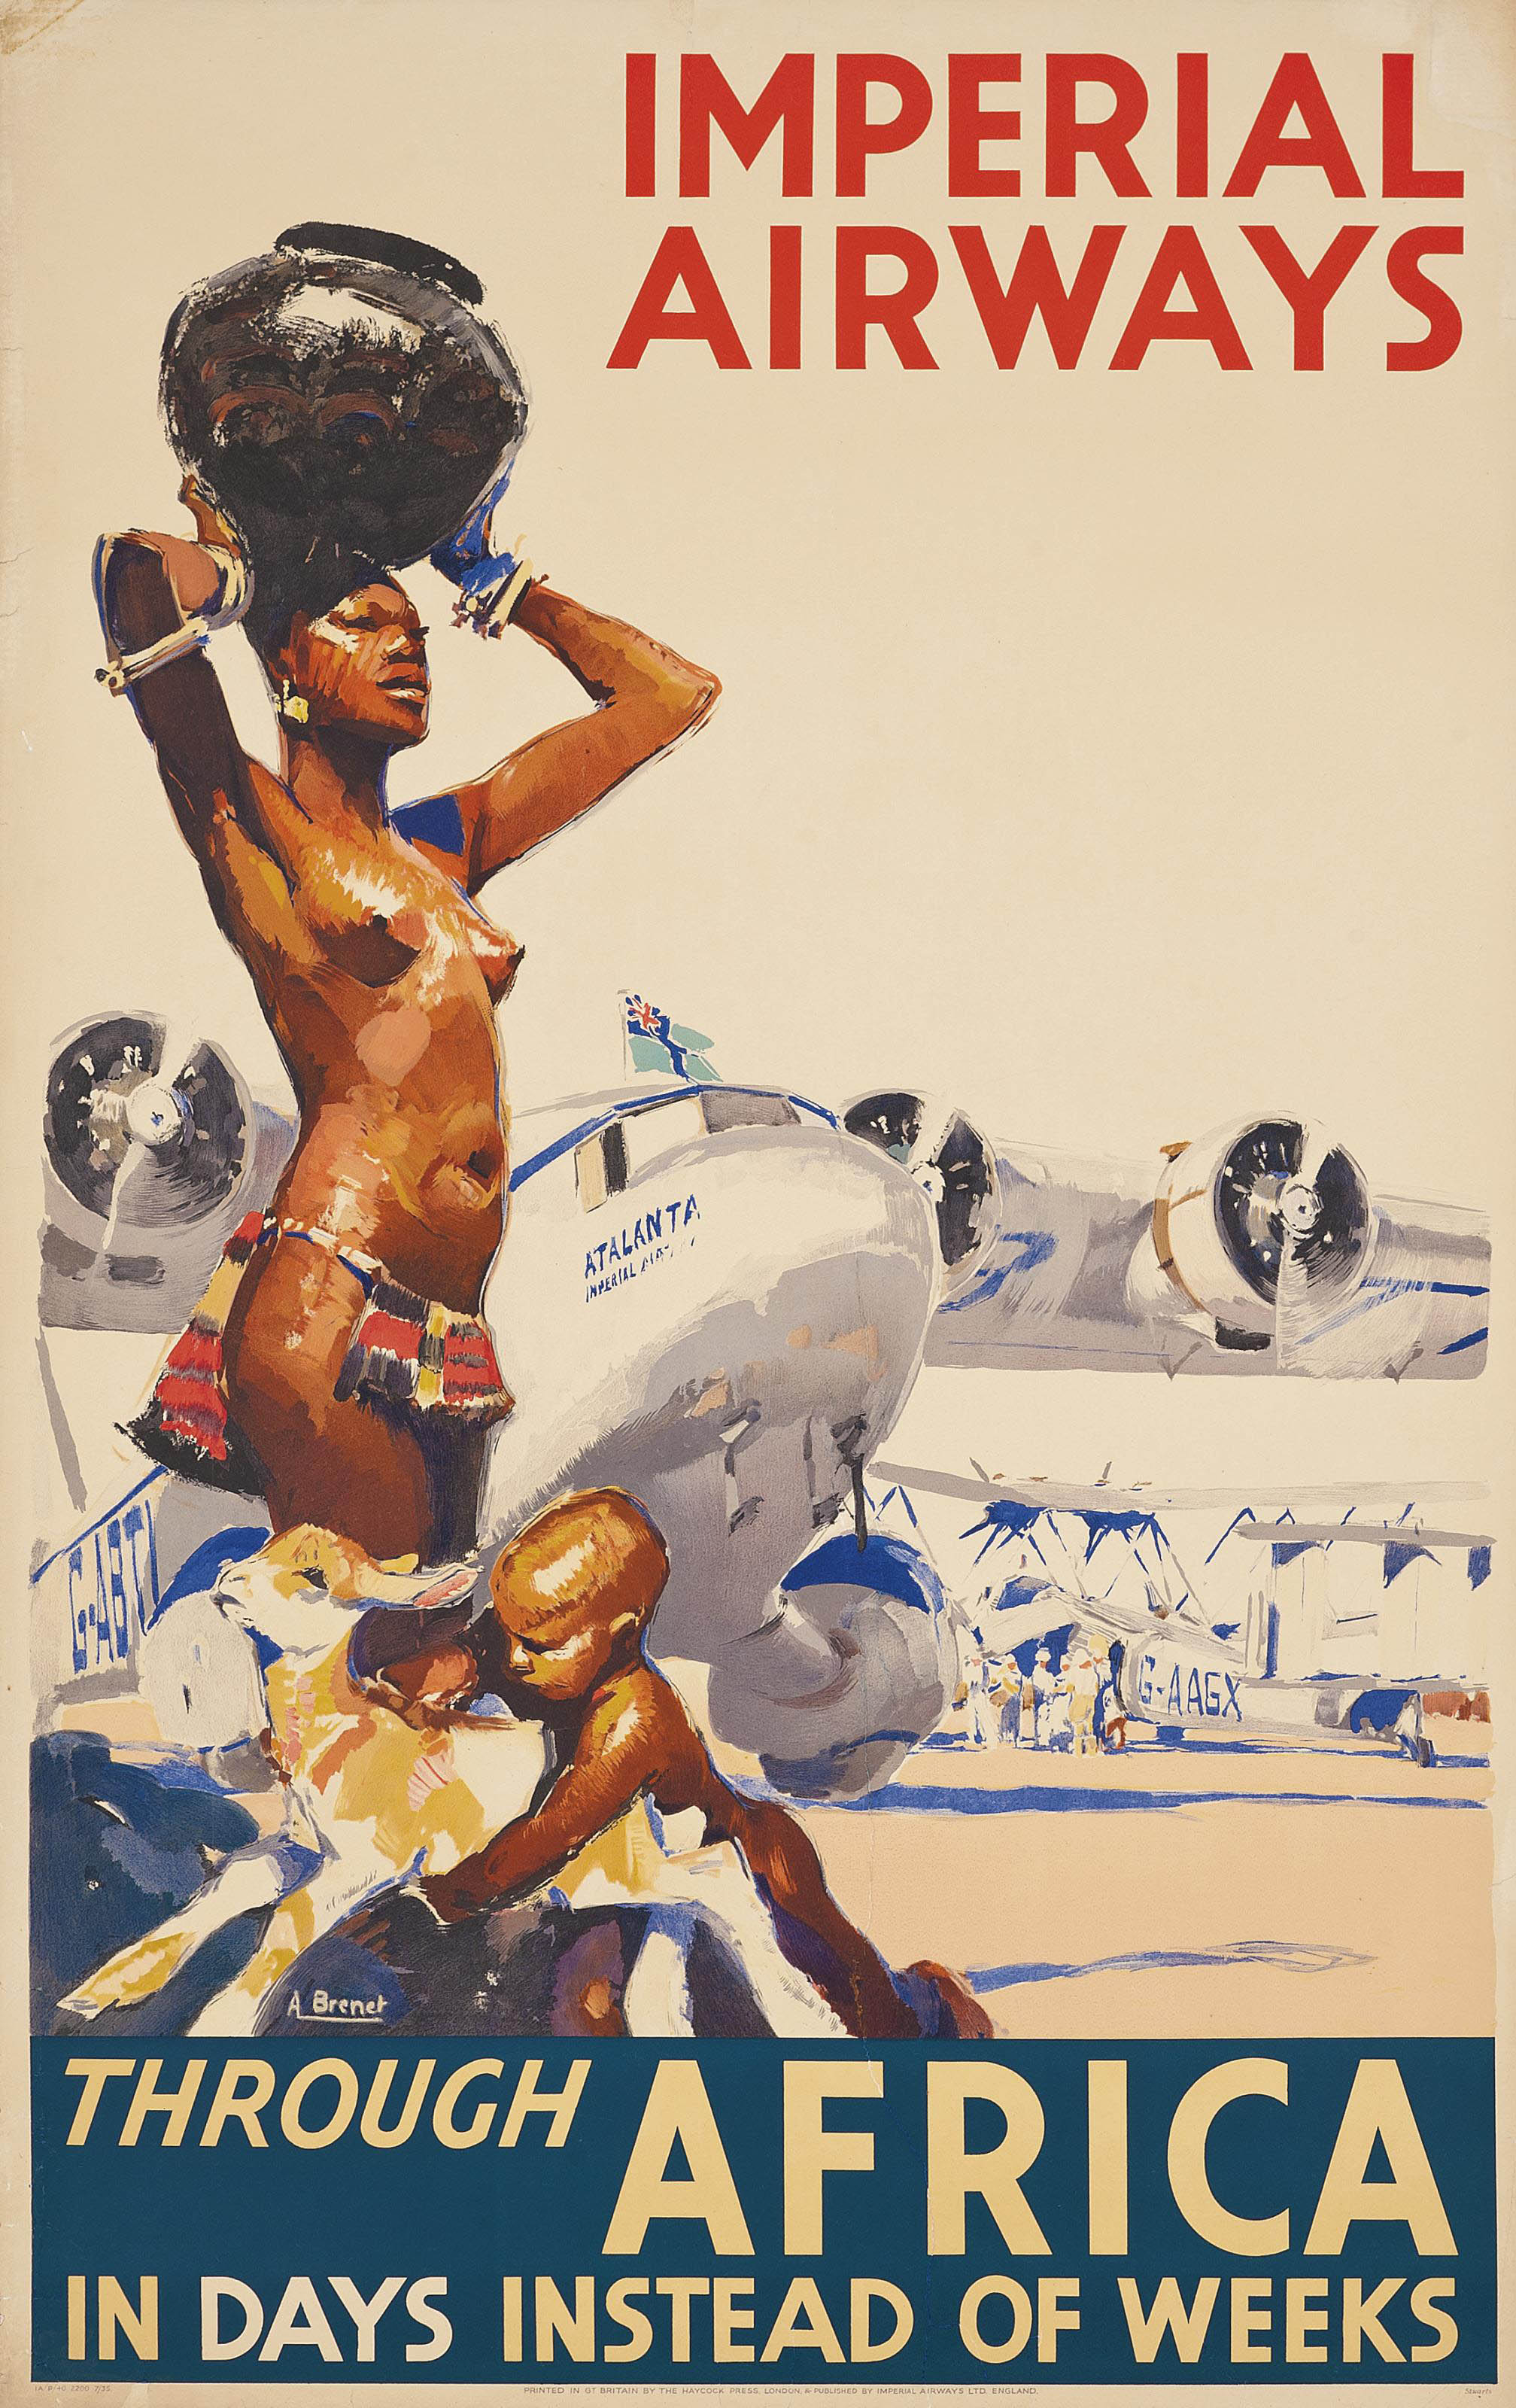 IMPERIAL AIRWAYS THROUGH AFRICA